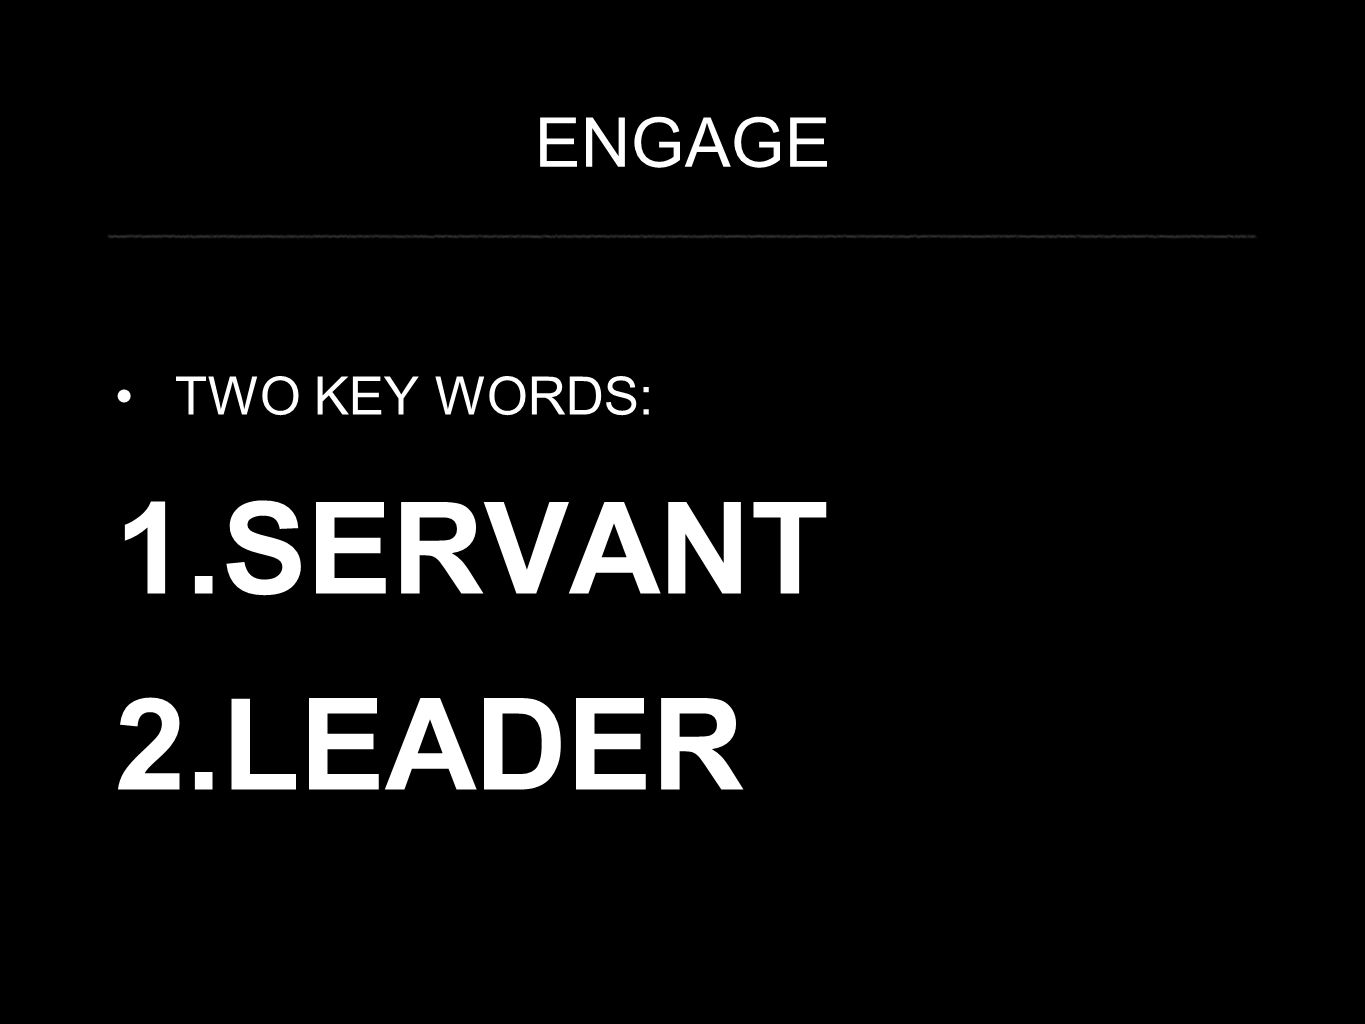 ENGAGE TWO KEY WORDS: 1.SERVANT 2.LEADER